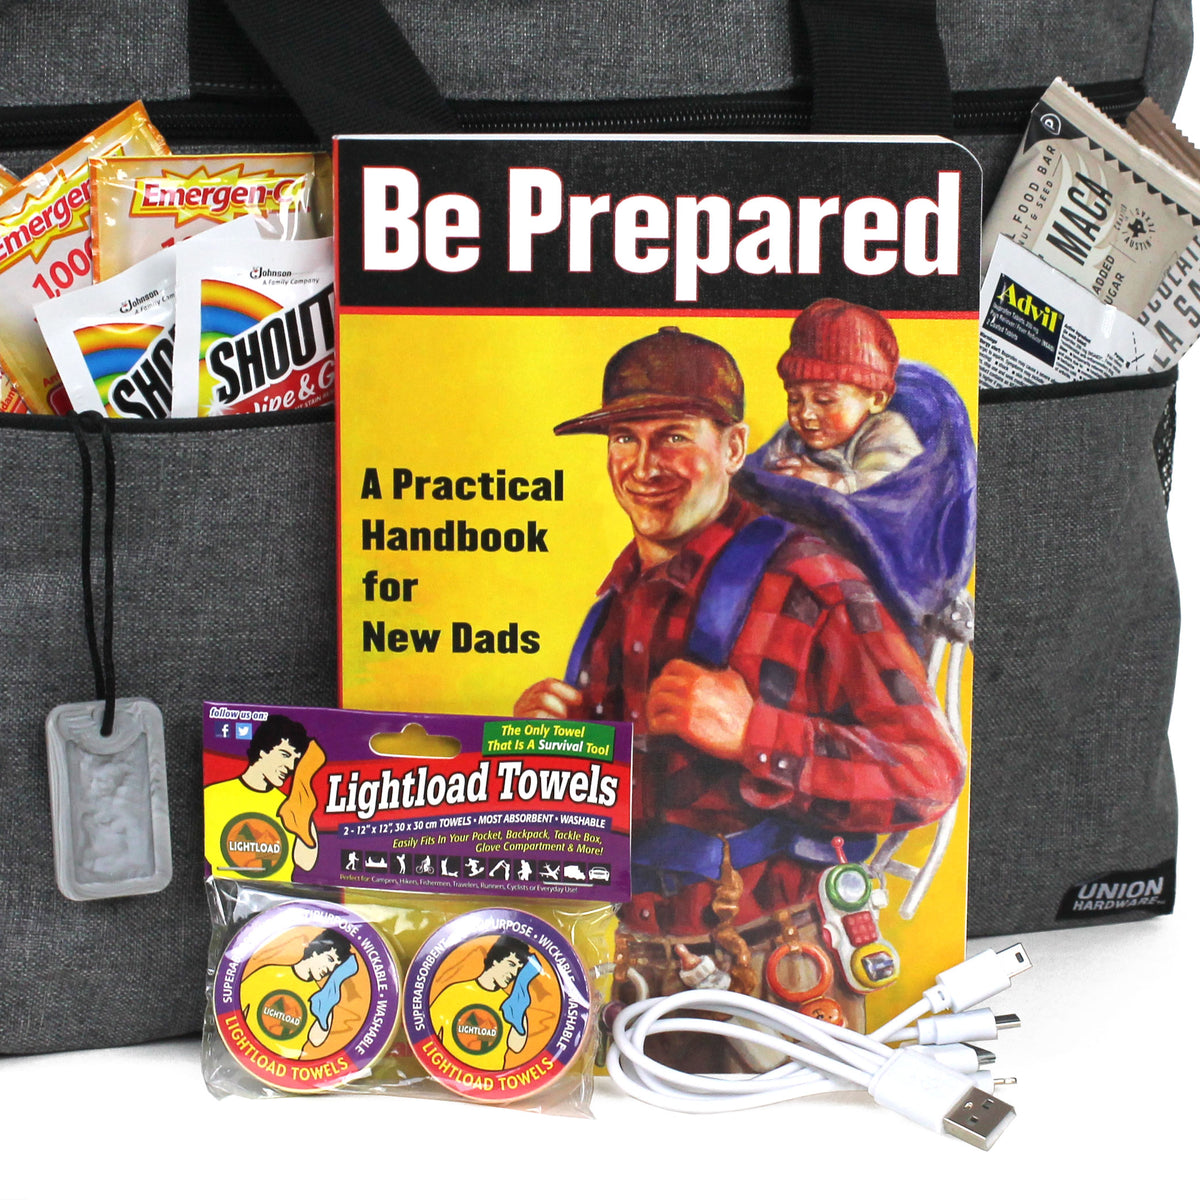 New Dad Survival Kit: Tactical